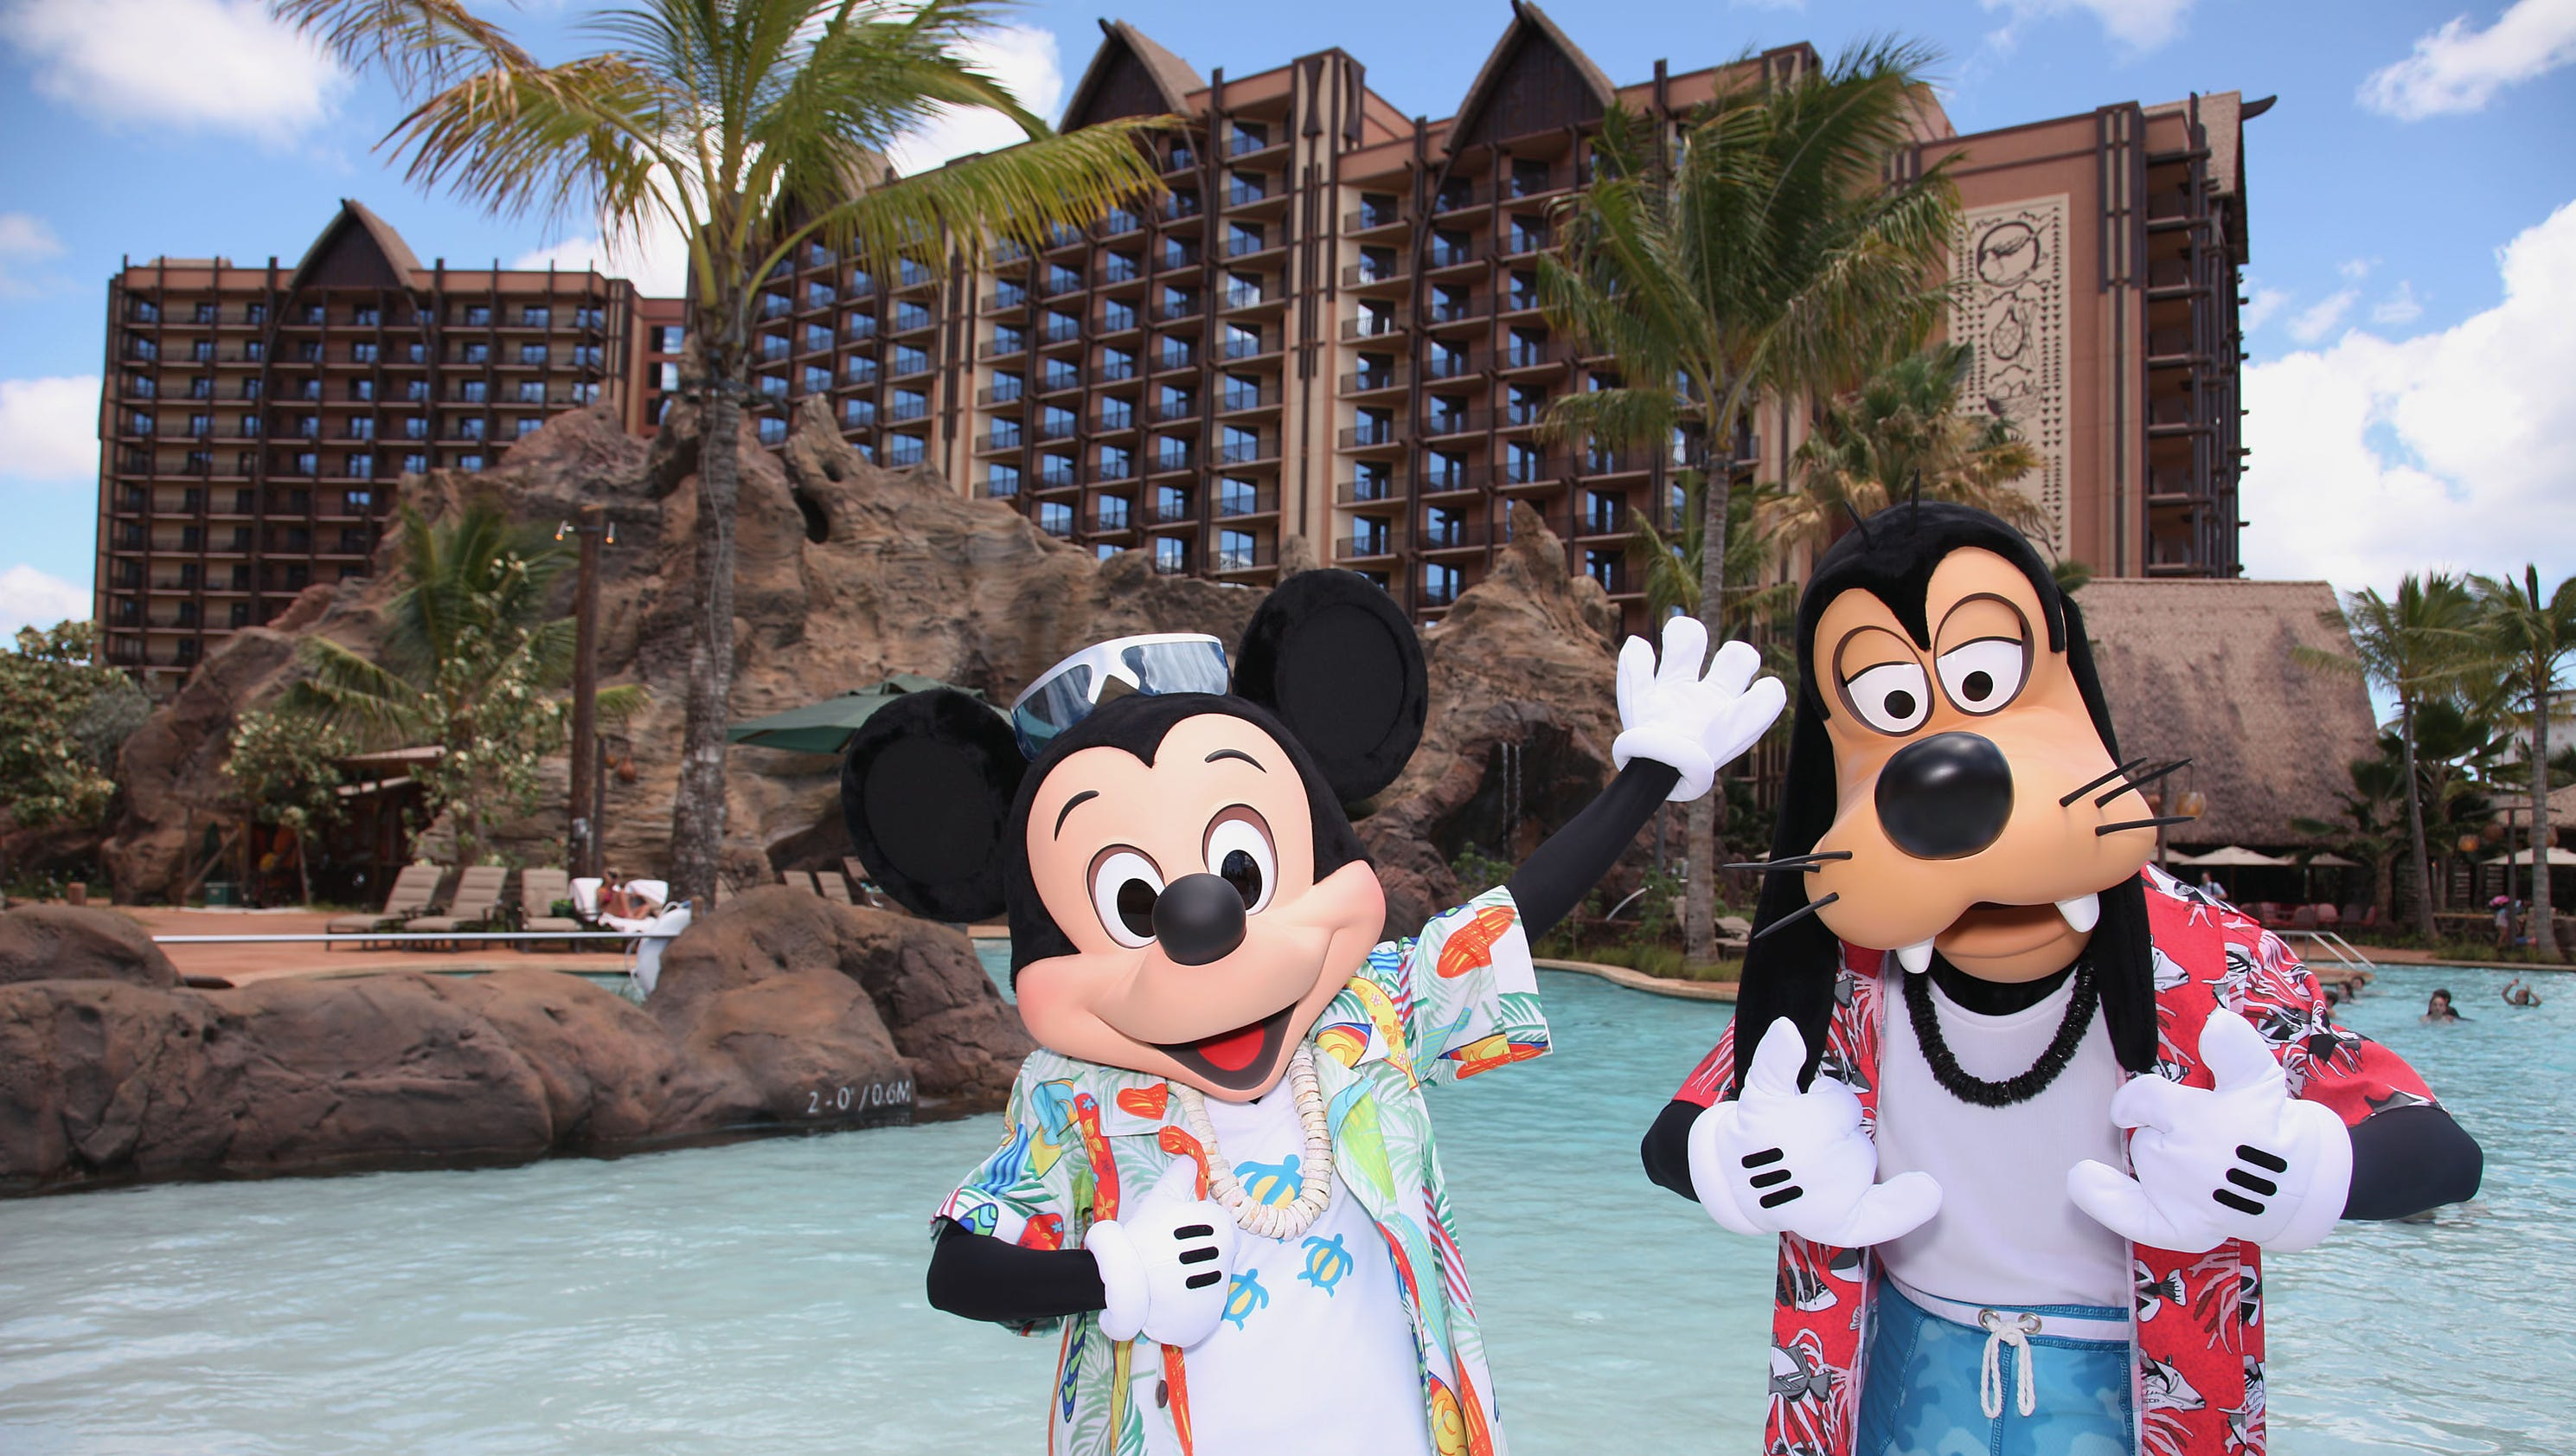 What Hawaiian Island Is The New Disney Resort On